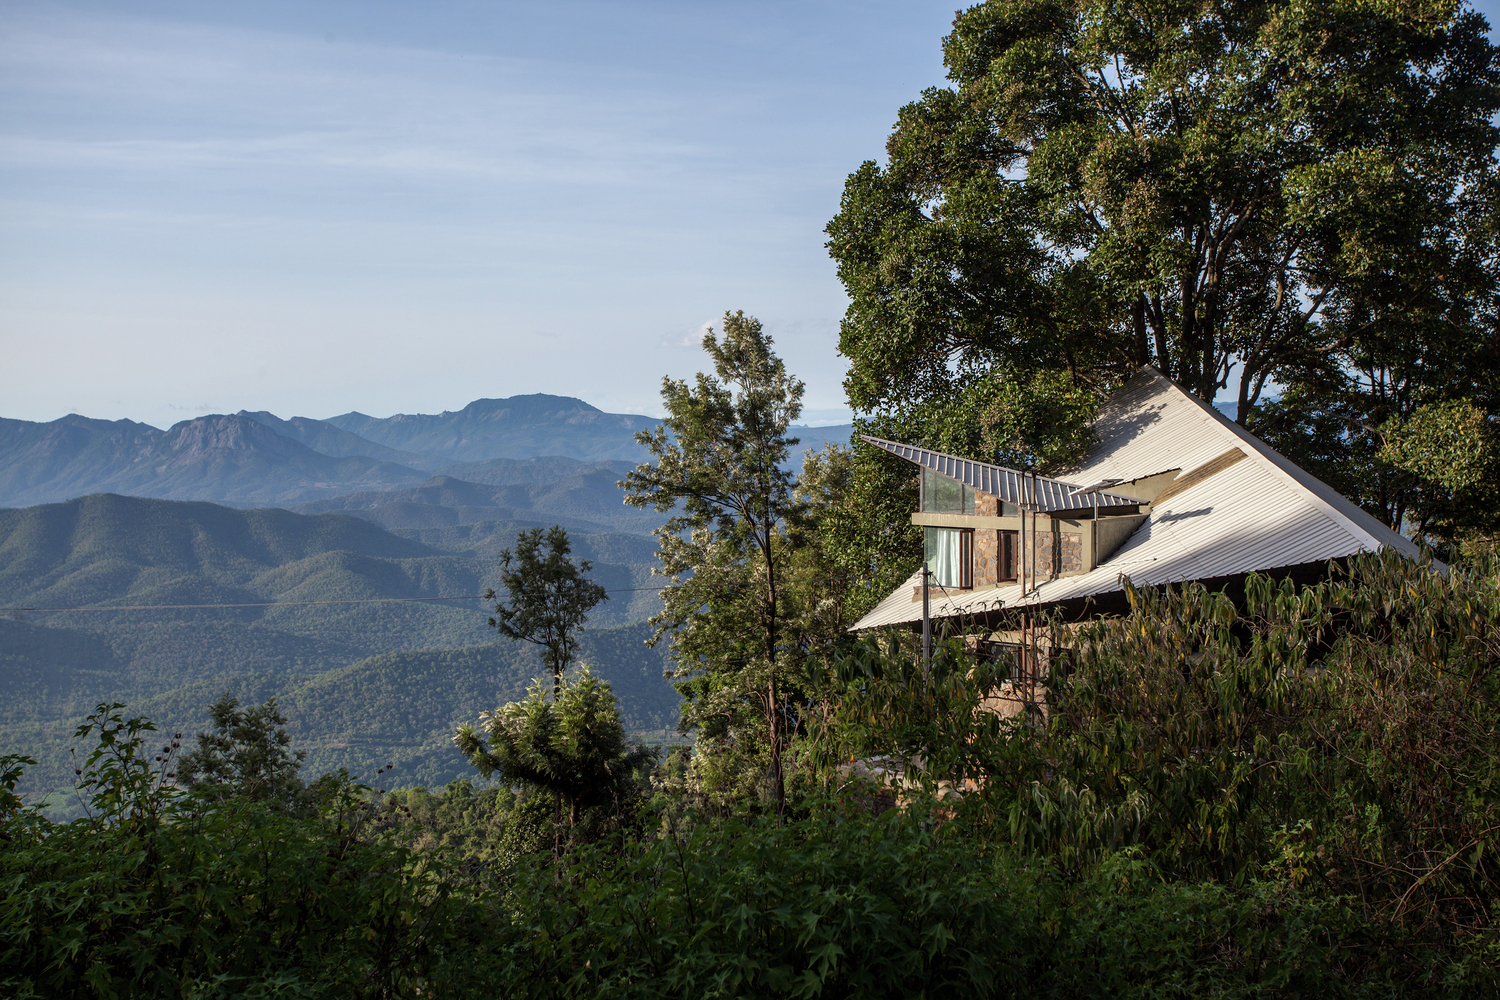 Hornbill House by Biome Environmental Solutions in Nilgiri ...